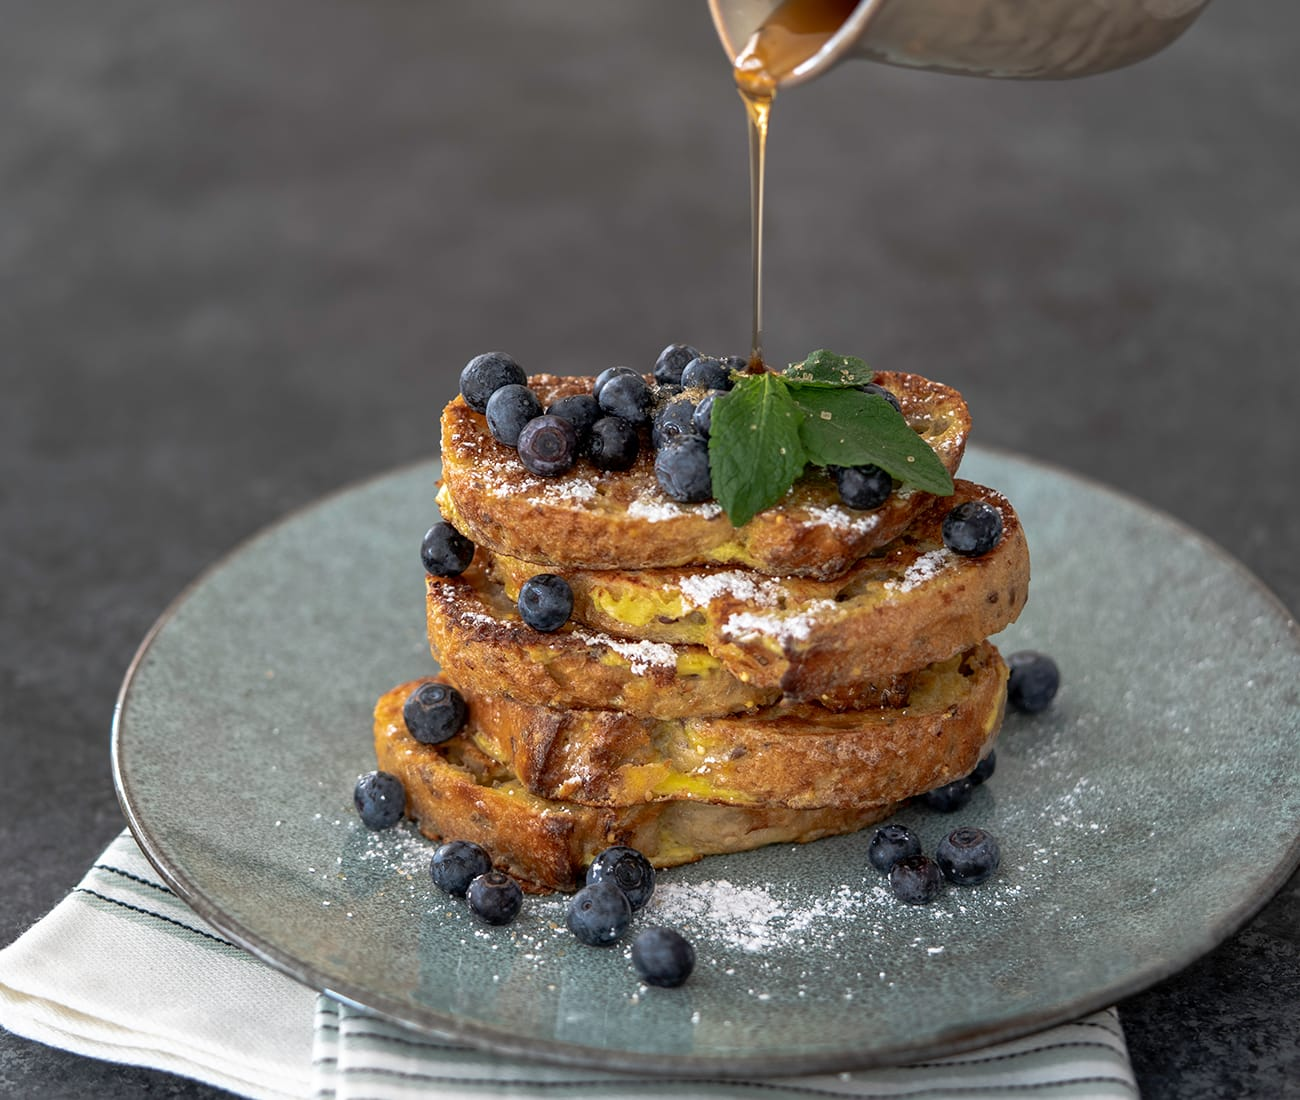 Image for Brie-Stuffed French Toast